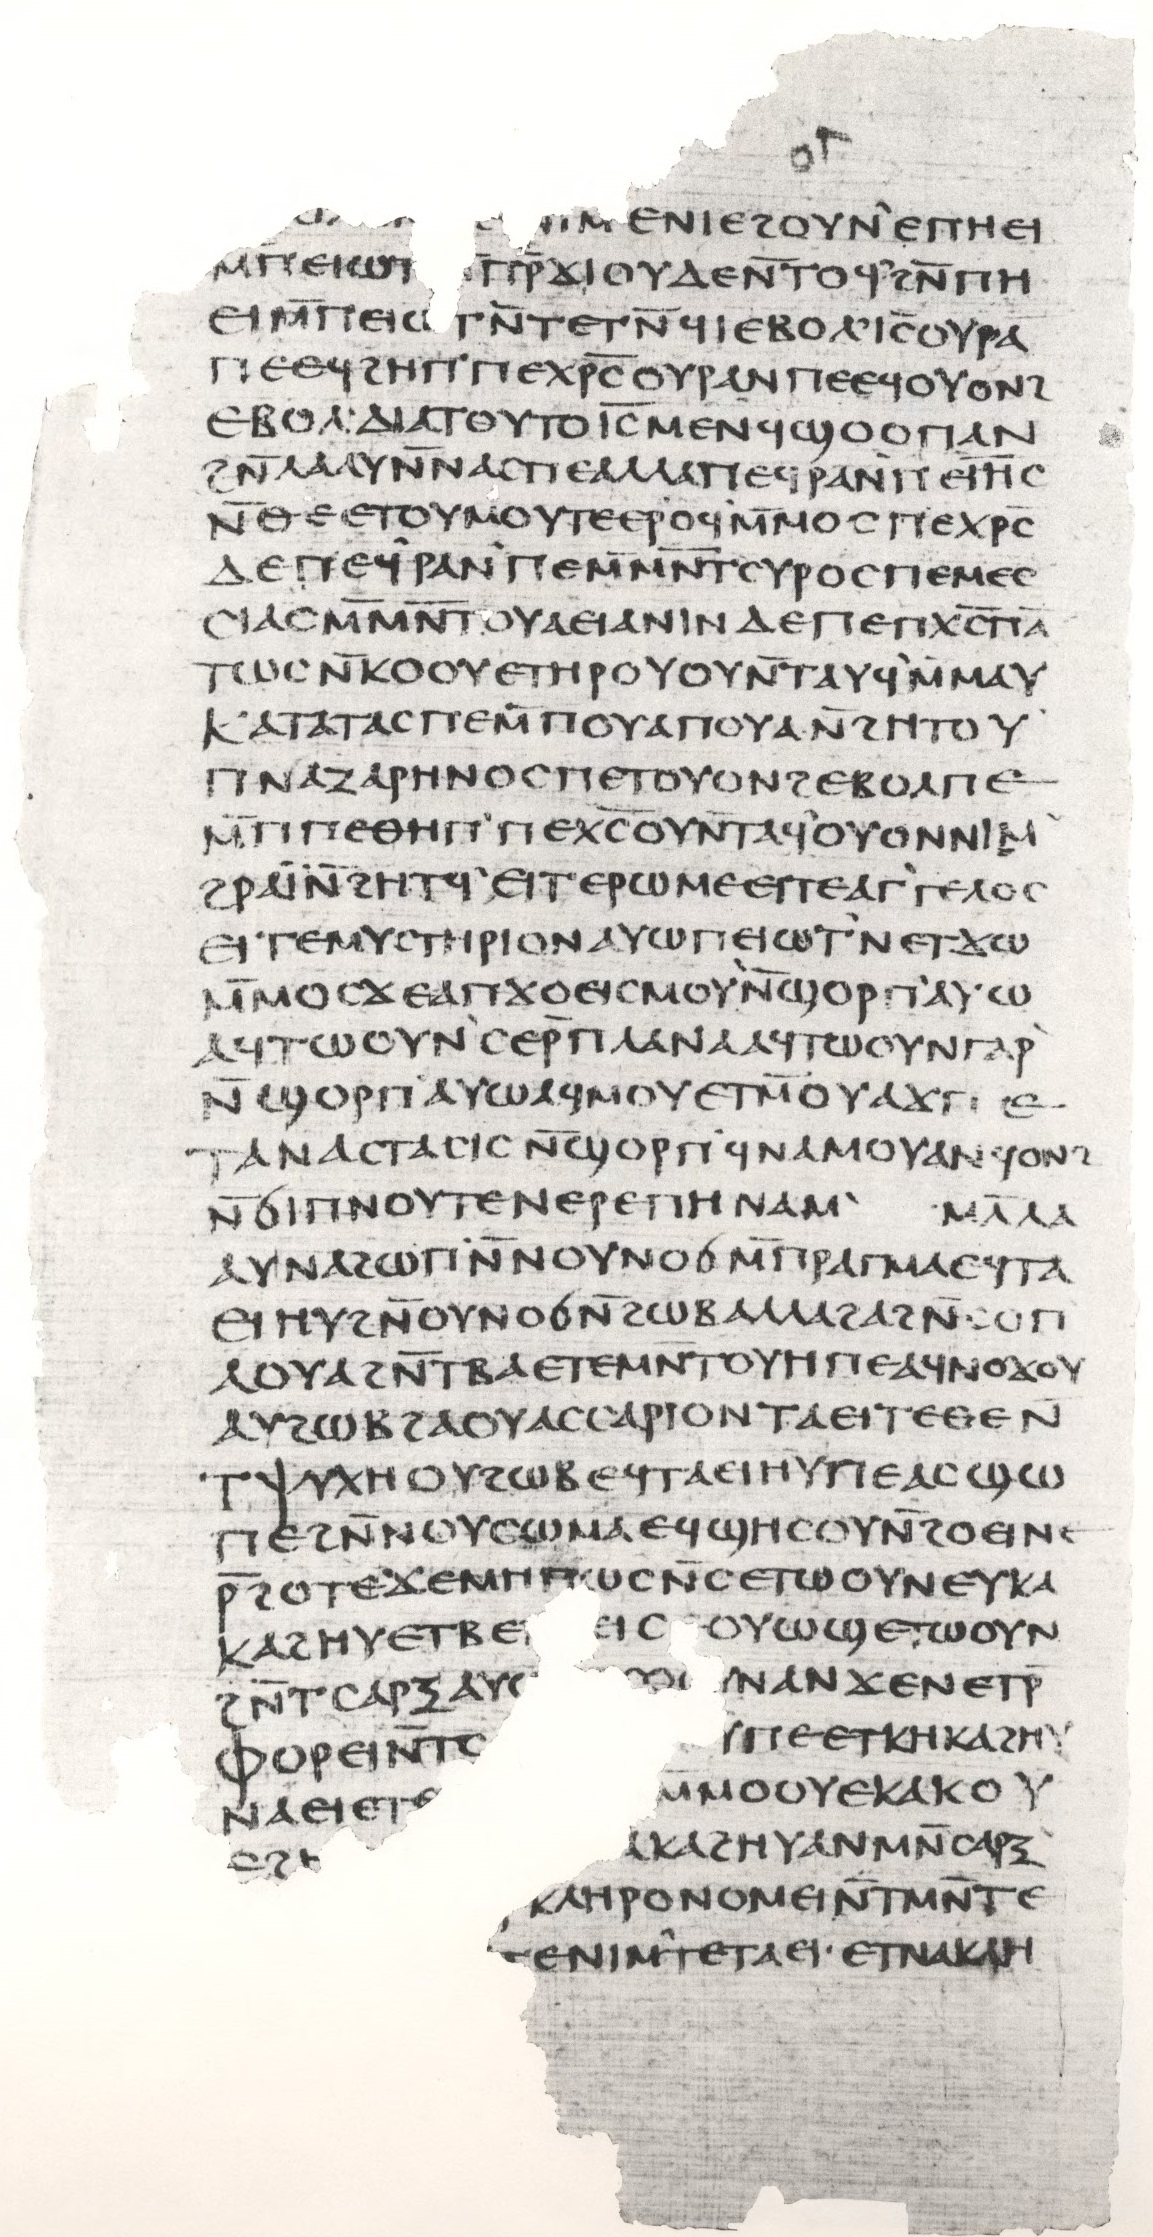 Gospel_of_Philip_facsimile_Page_56.jpg